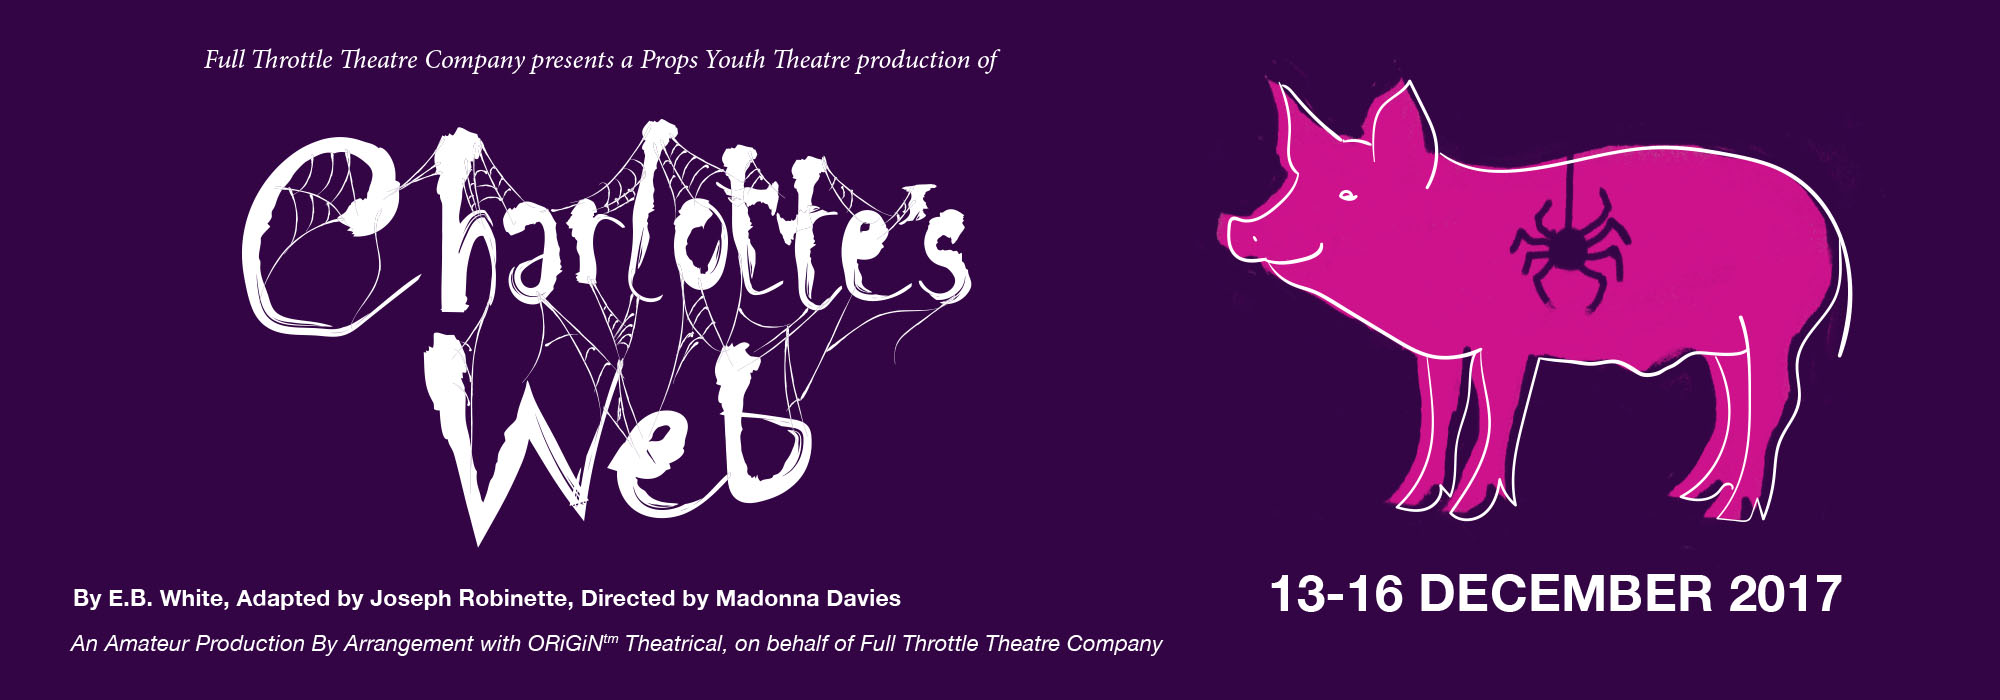 Charlotte's Web  - Full Throttle Theatre production